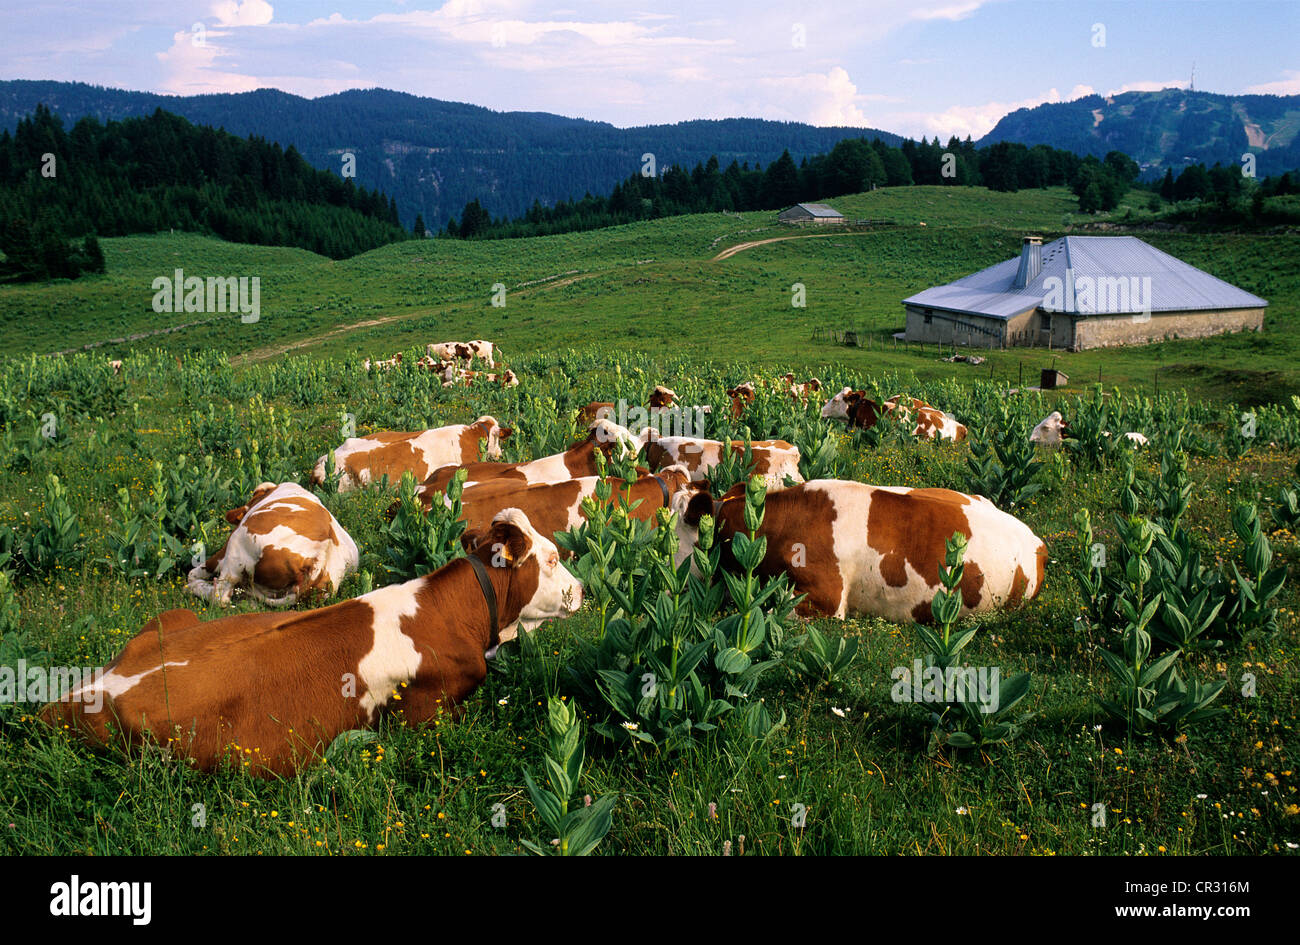 France, Jura, Foret du Massacre, cows of monbeliard breed (montbeliarde) in the mountain pastures in de middle of - Stock Image